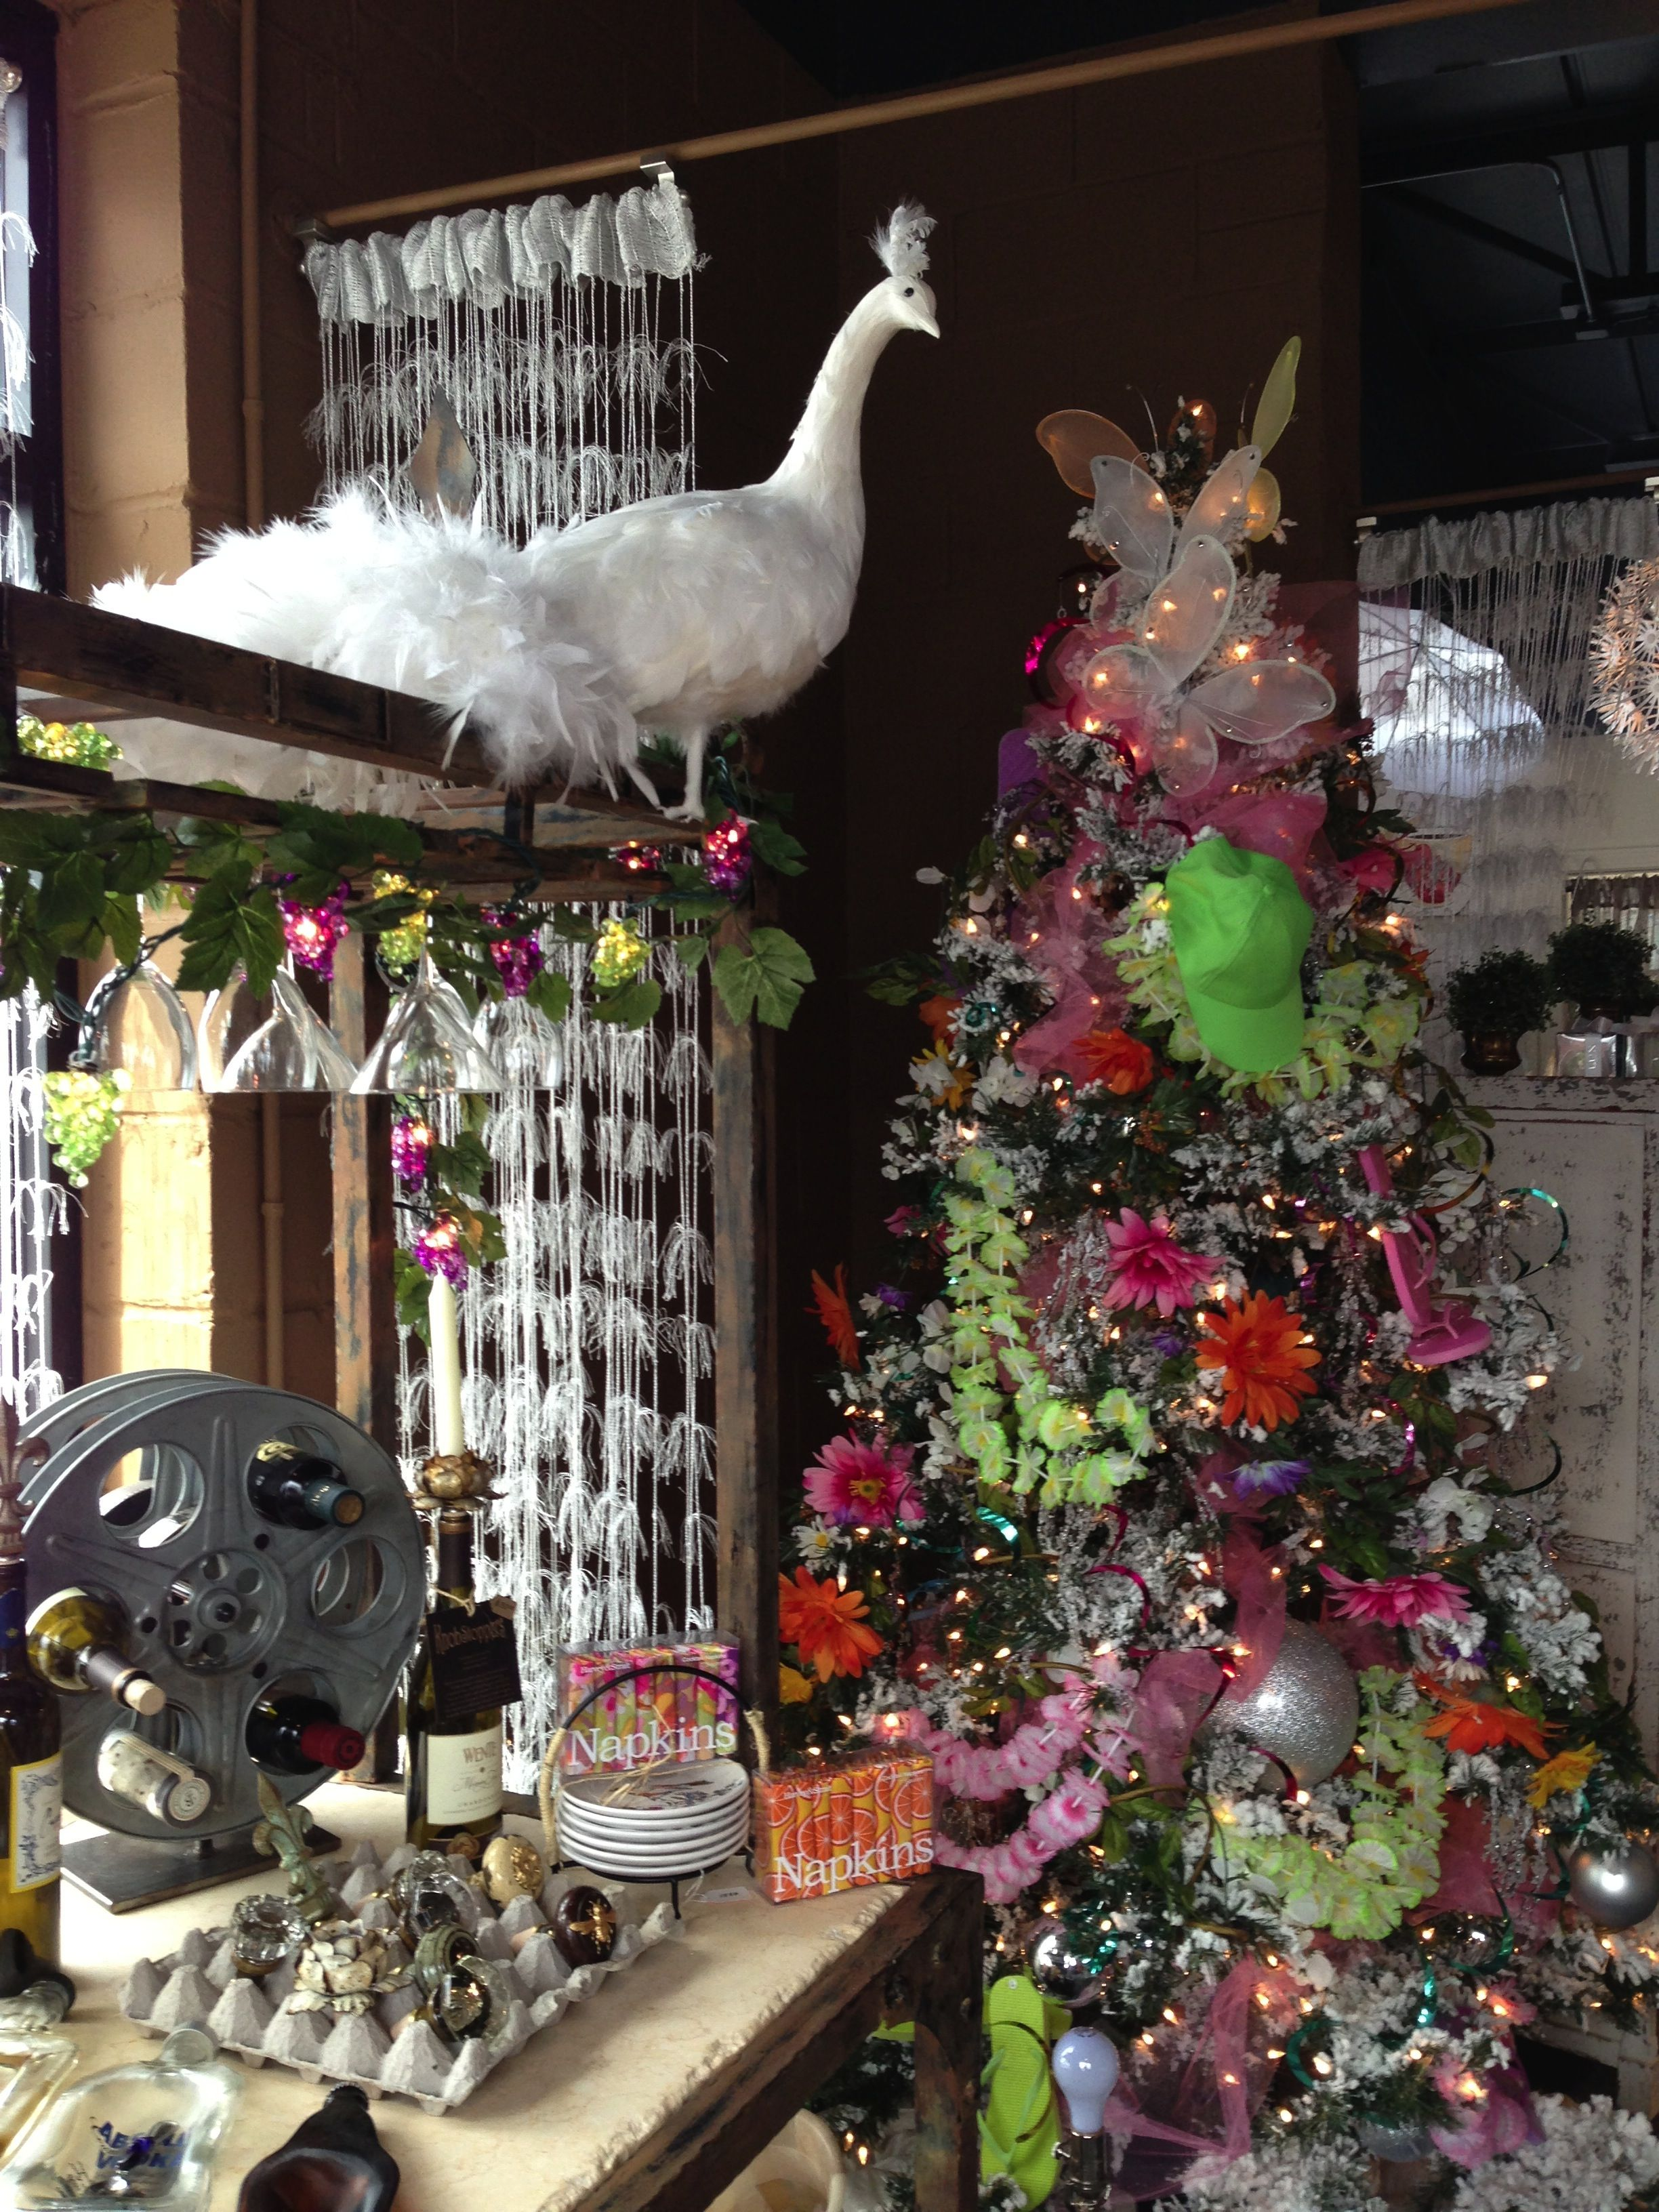 Beautiful White Peacock The Perfect Christmas Tree Topper With Our Flip Flop Christmas Tree Christmas Reflections Christmas Tree Christmas Tree Toppers